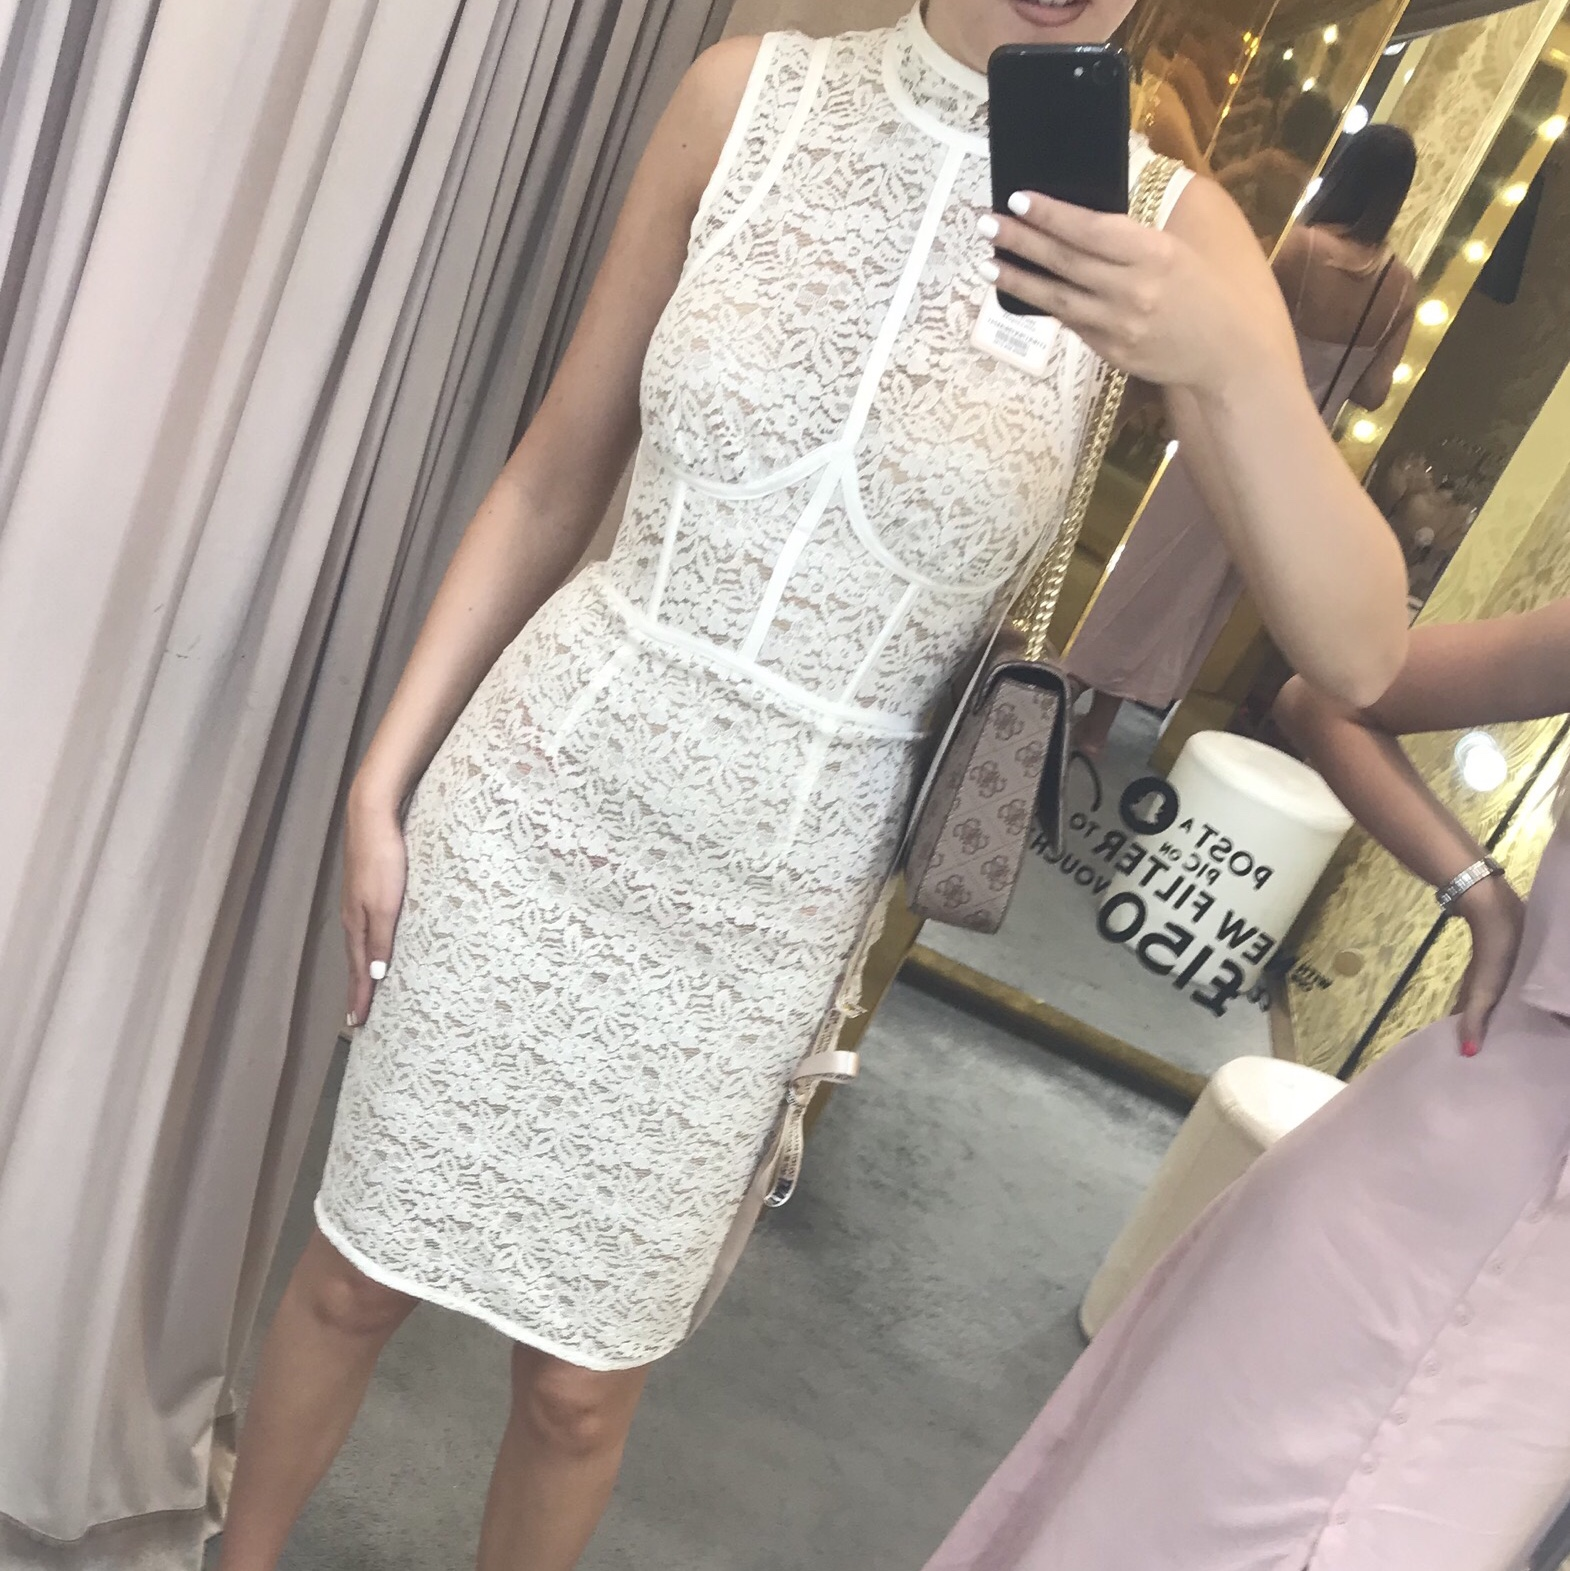 Celeb Boutique White Lace Dress Worn Once For Worn Depop